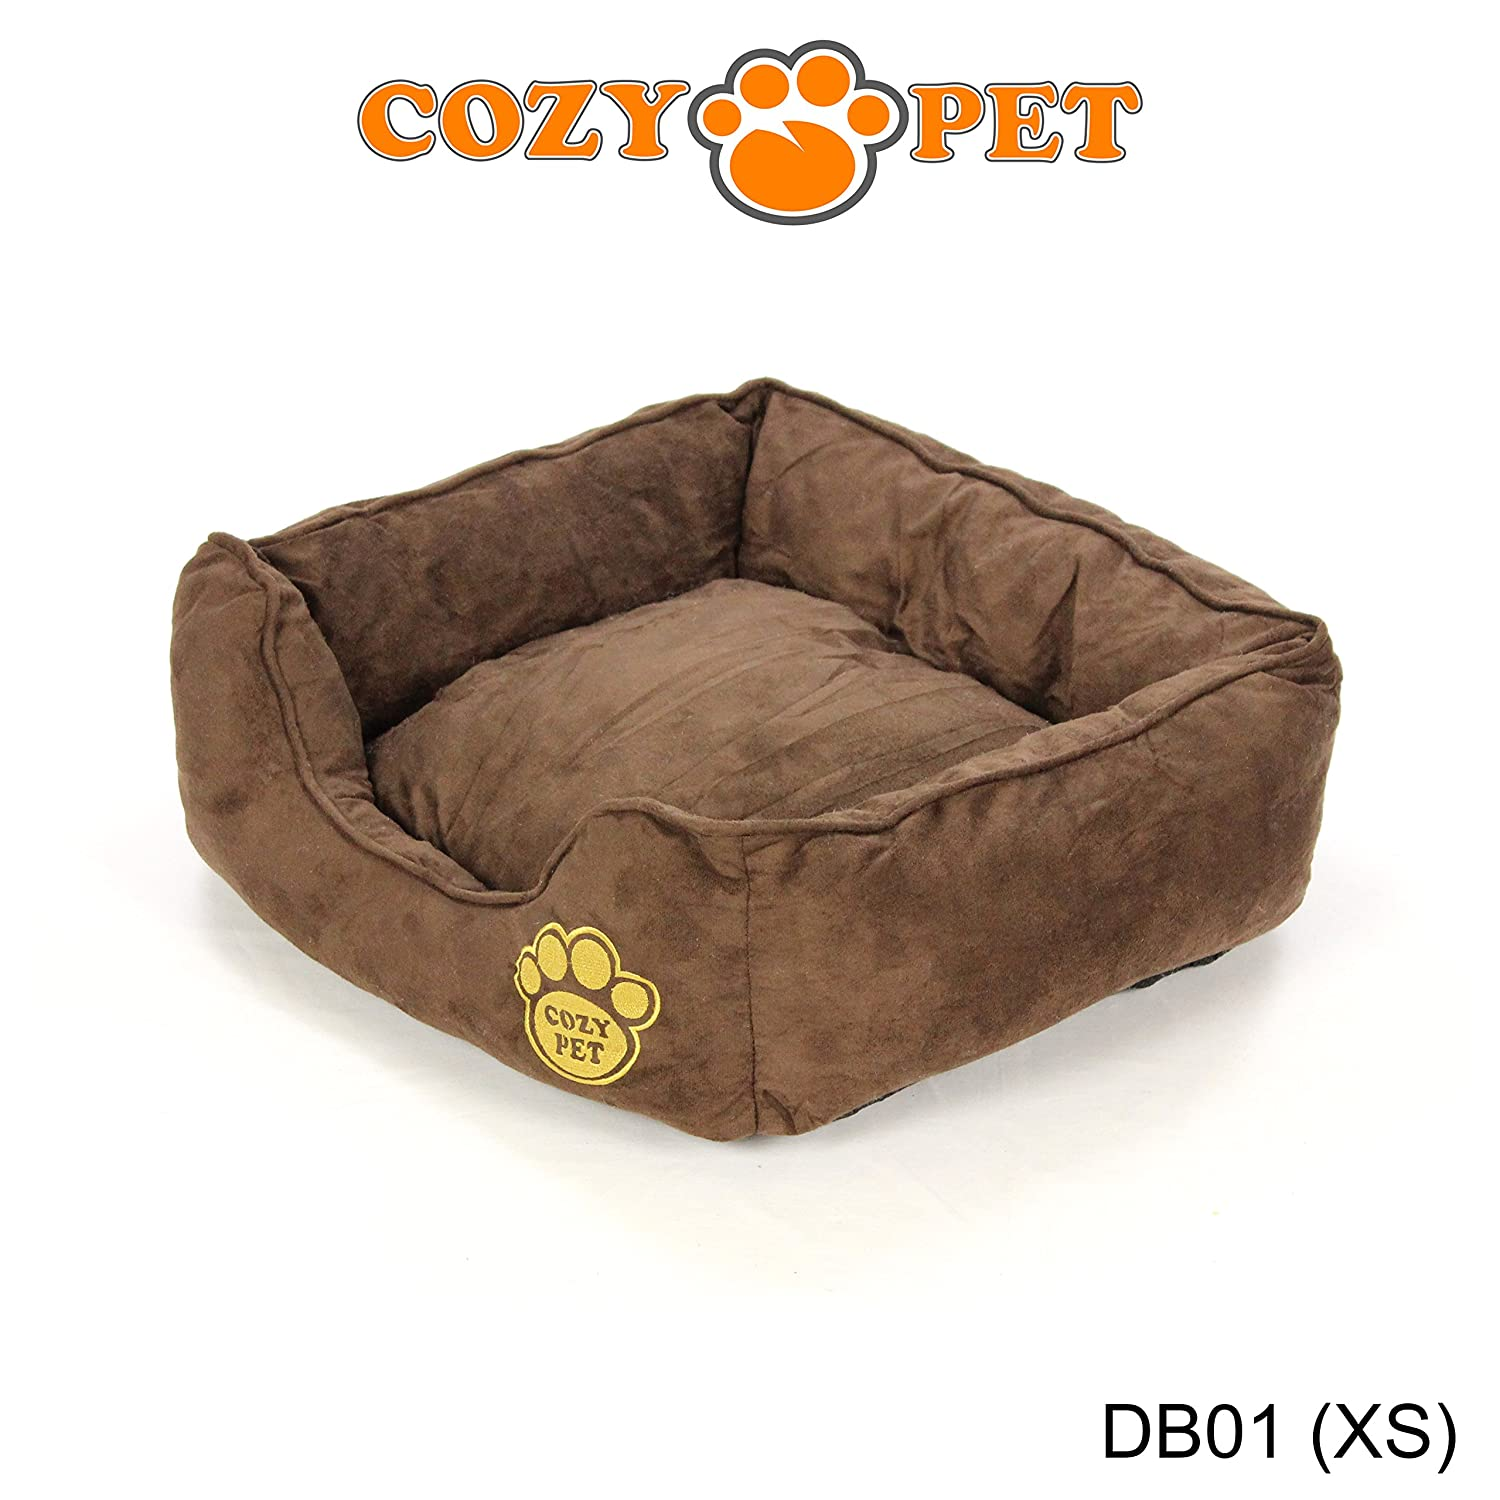 bed and end best an made images on from beds cute doggie old dog ablessednana pet puppy pinterest table